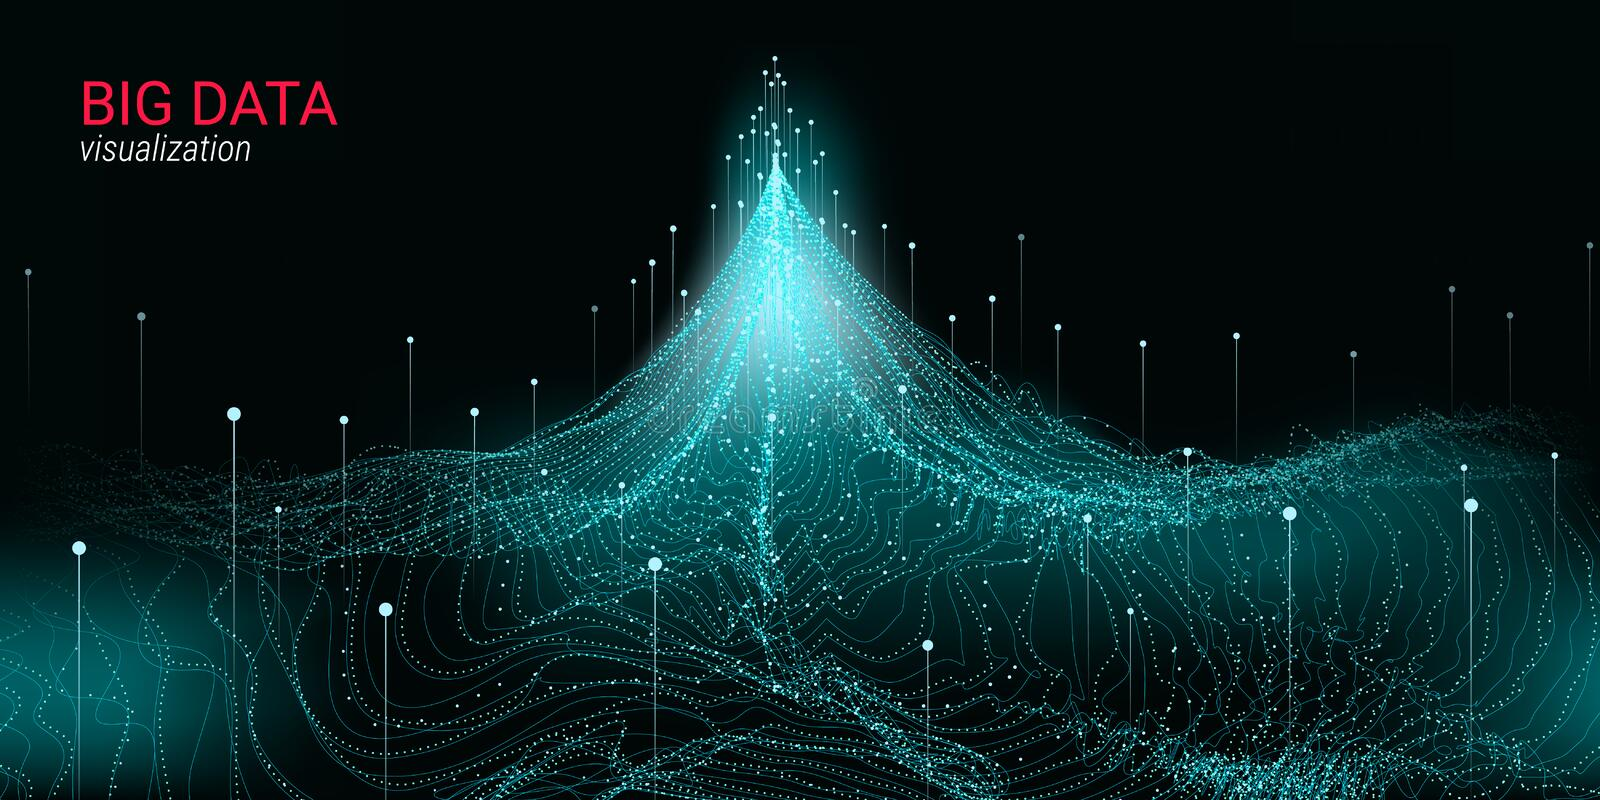 Futuristic Abstraction. Big Data Visualization. royalty free illustration